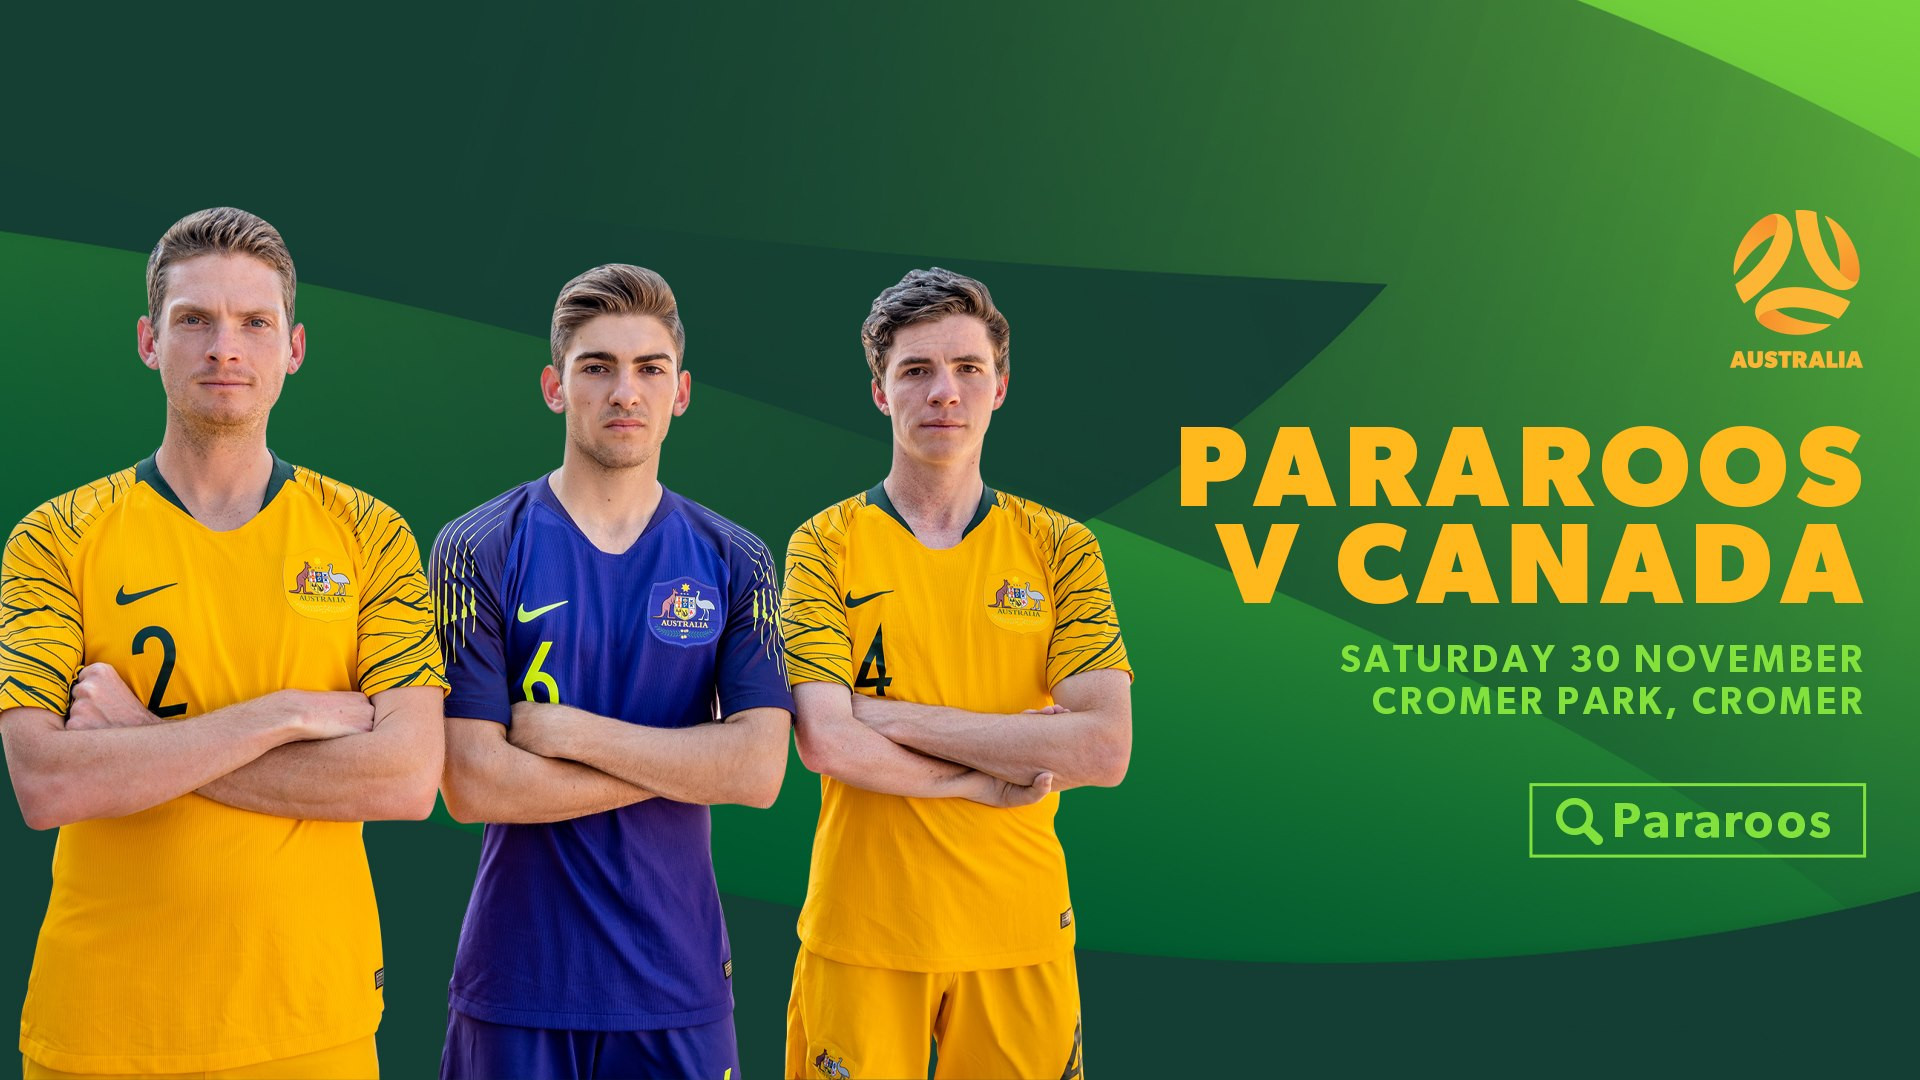 Pararoos coming home for first time since Sydney 2000